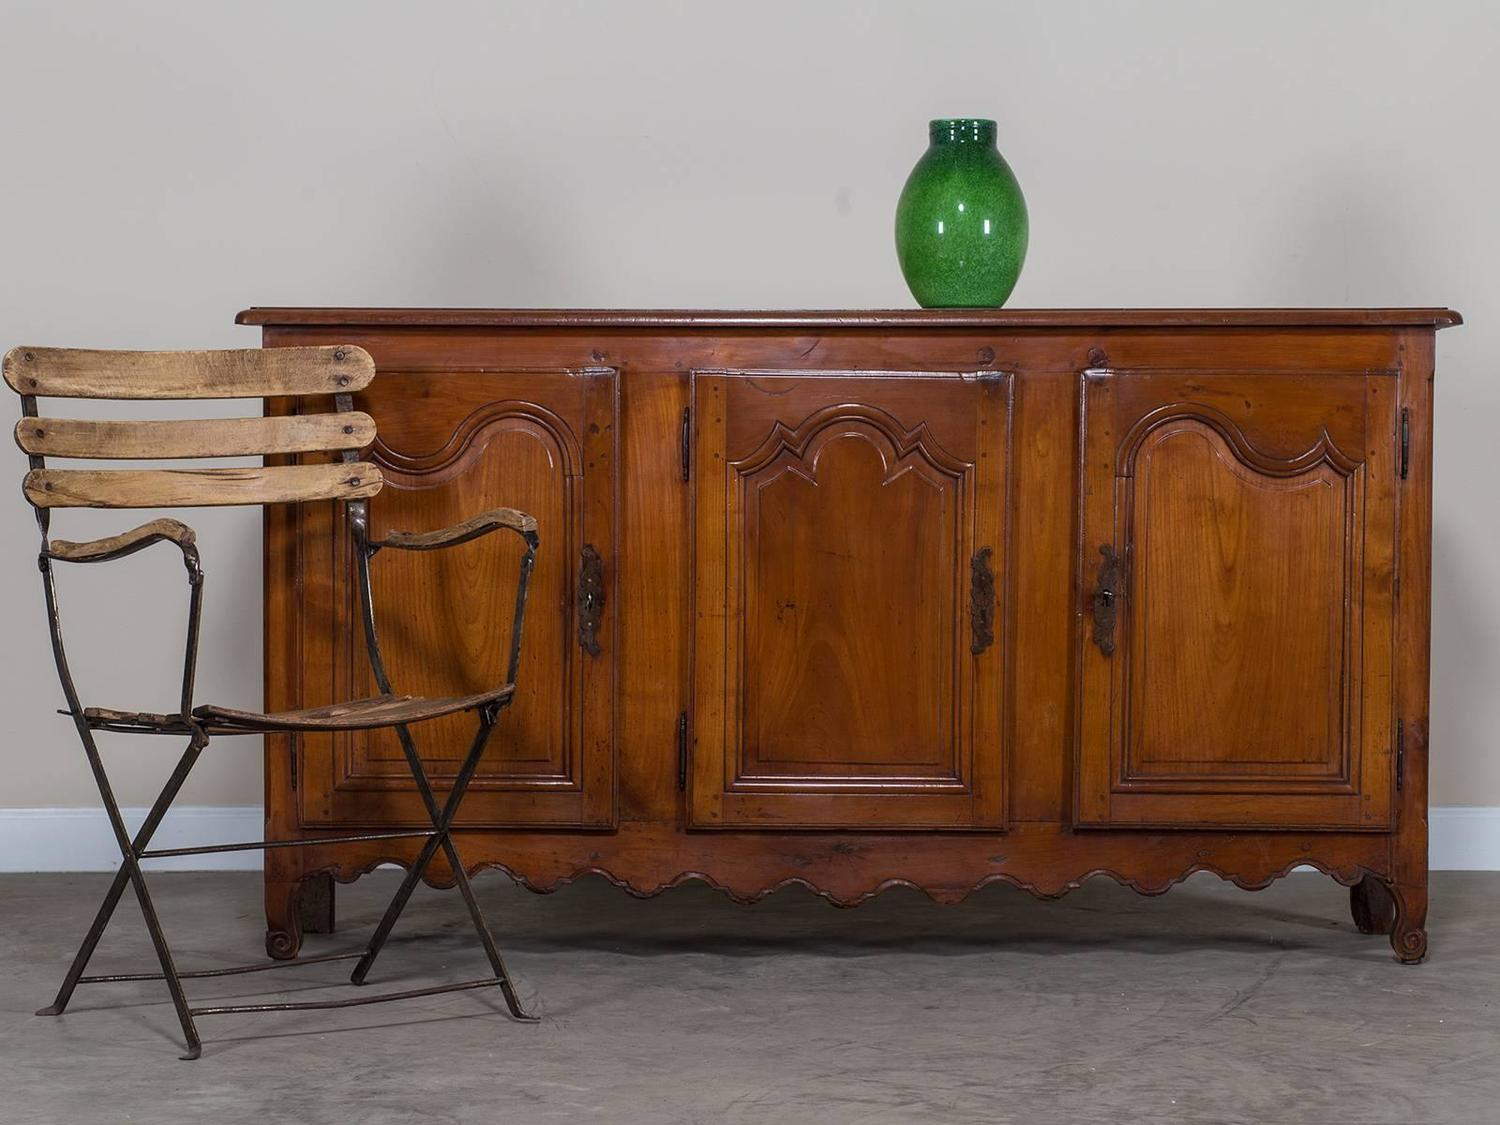 Antique french louis xv style cherry enfilade buffet circa 1820 for sale at - Buffet enfilade vintage ...